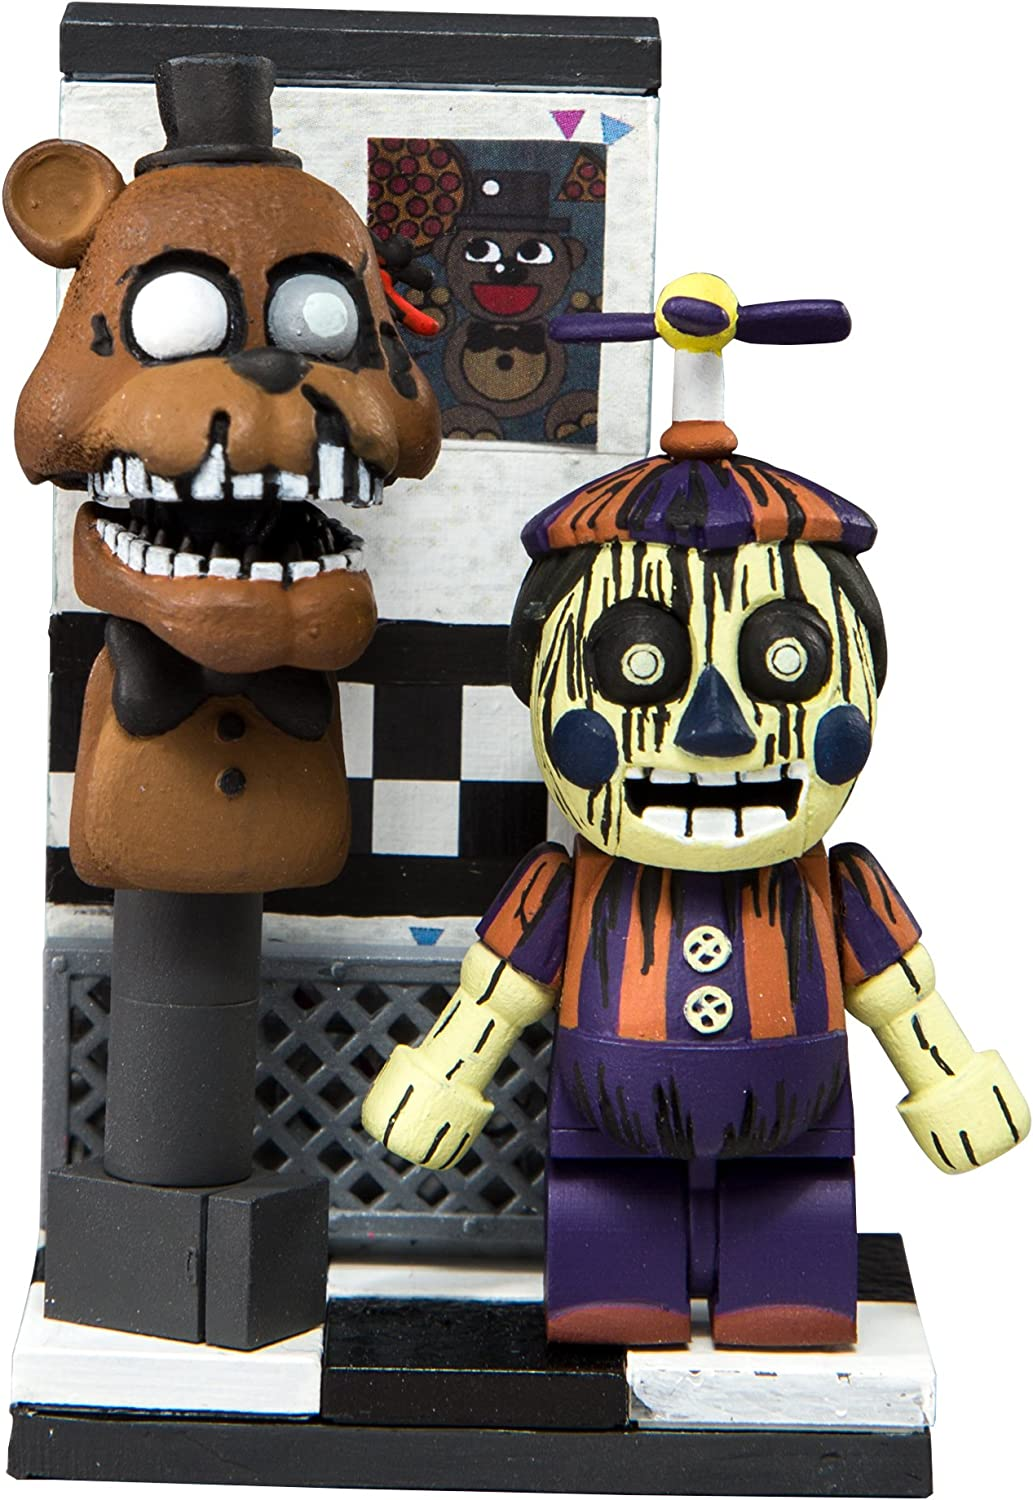 HEO GMBH- Five Nights at FreddyS Office Hallway Micro Construction Set construccion Freddy´s, Multicolor (MC Farlane 12813-0): Amazon.es: Juguetes y juegos